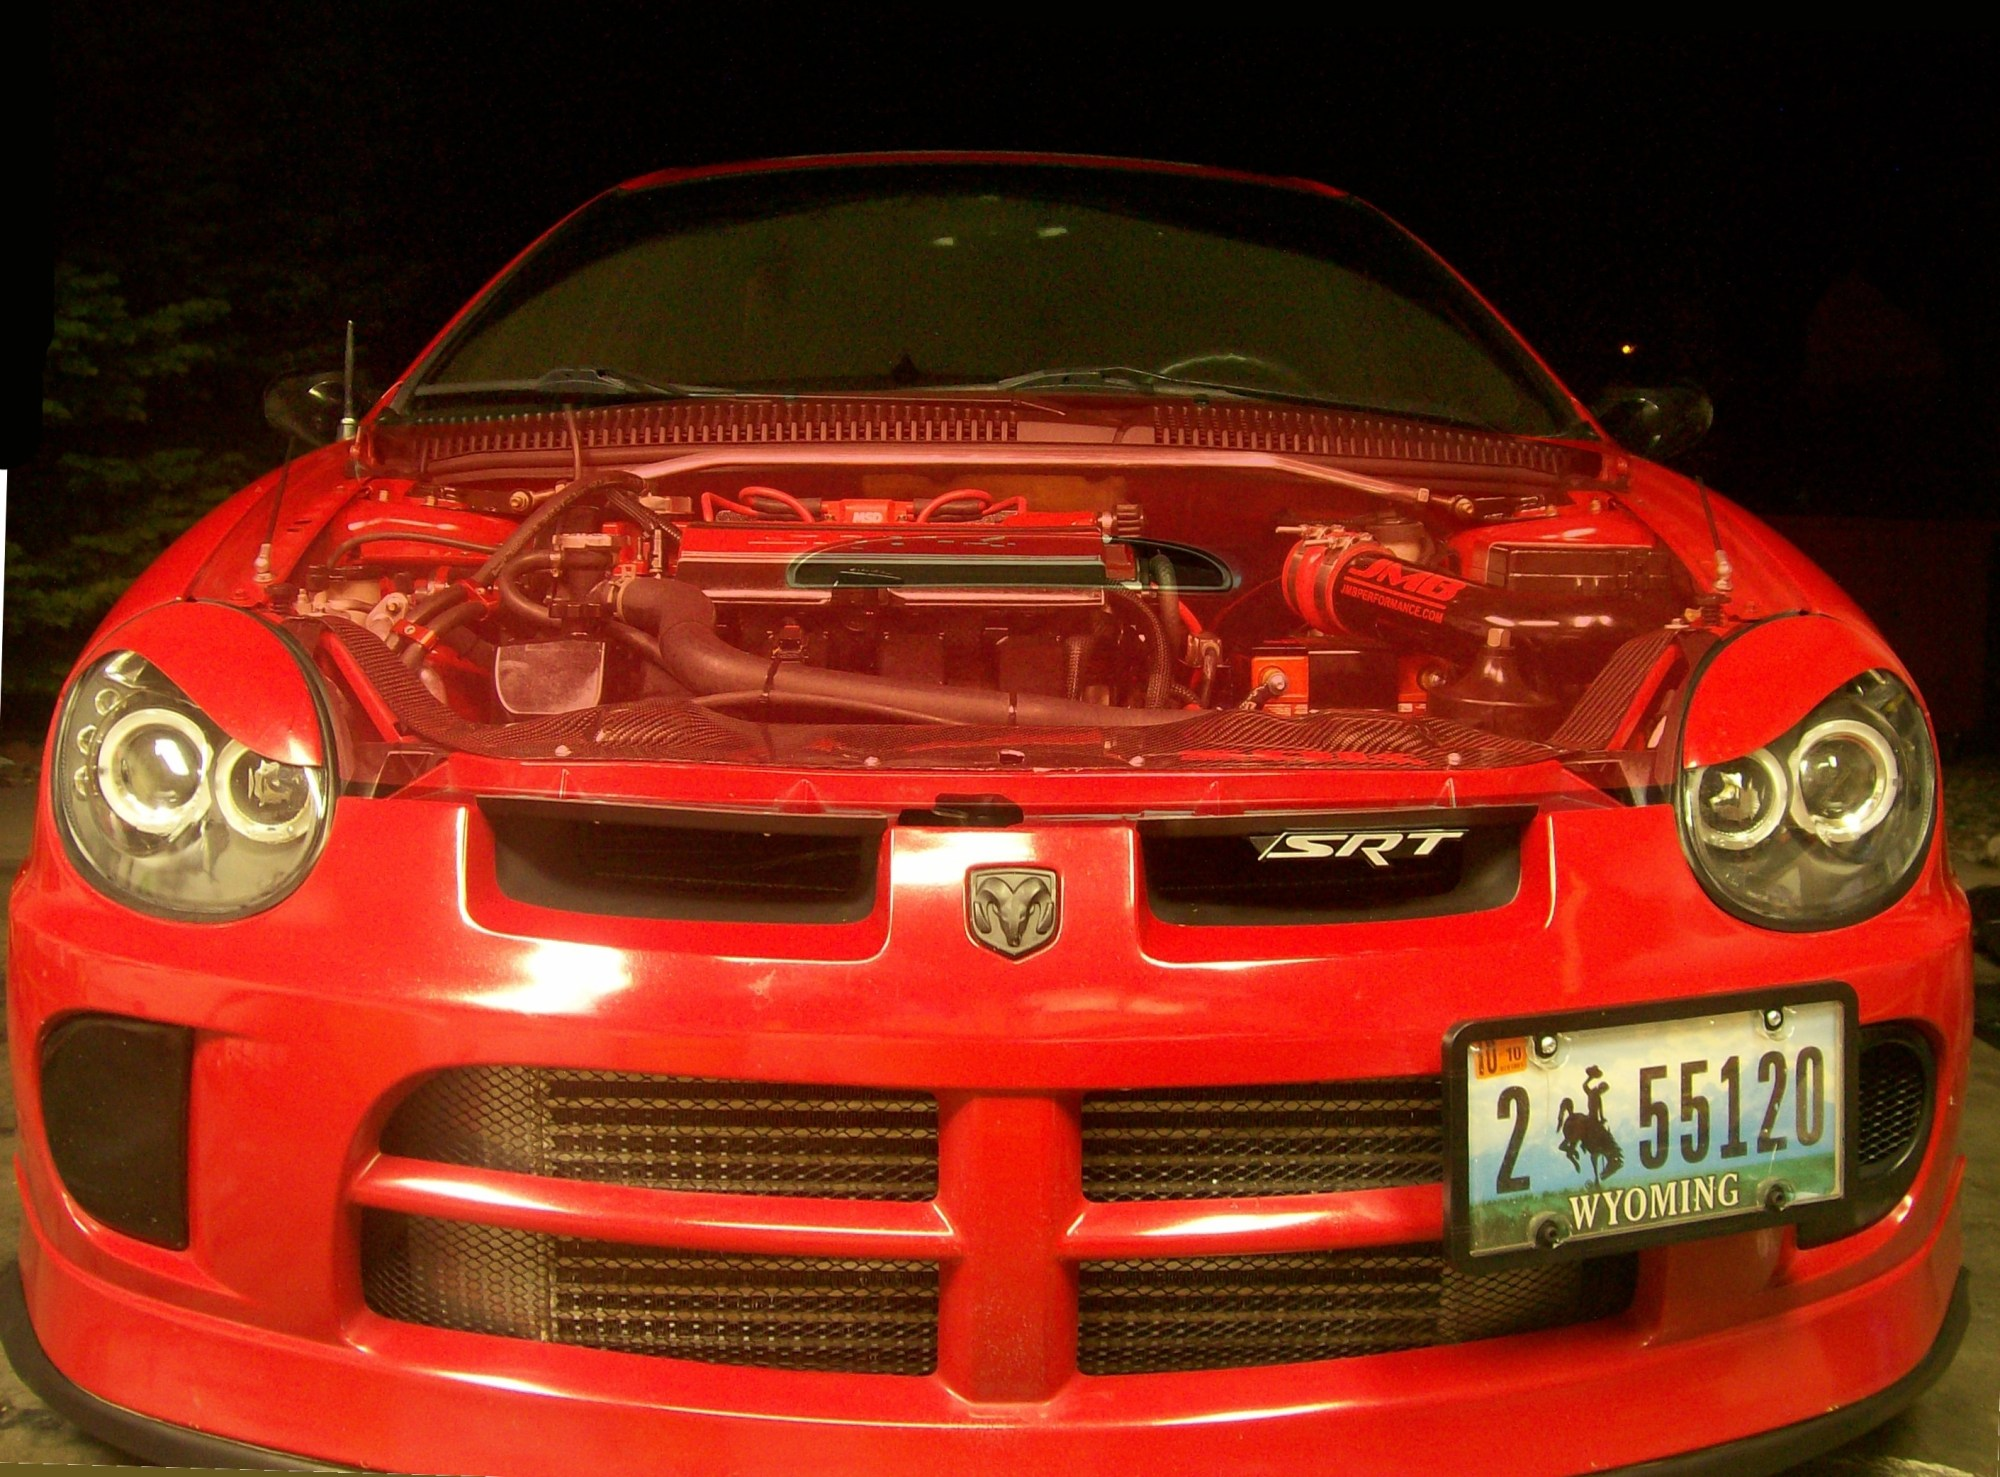 hight resolution of 4g63cyclone 2004 dodge neon